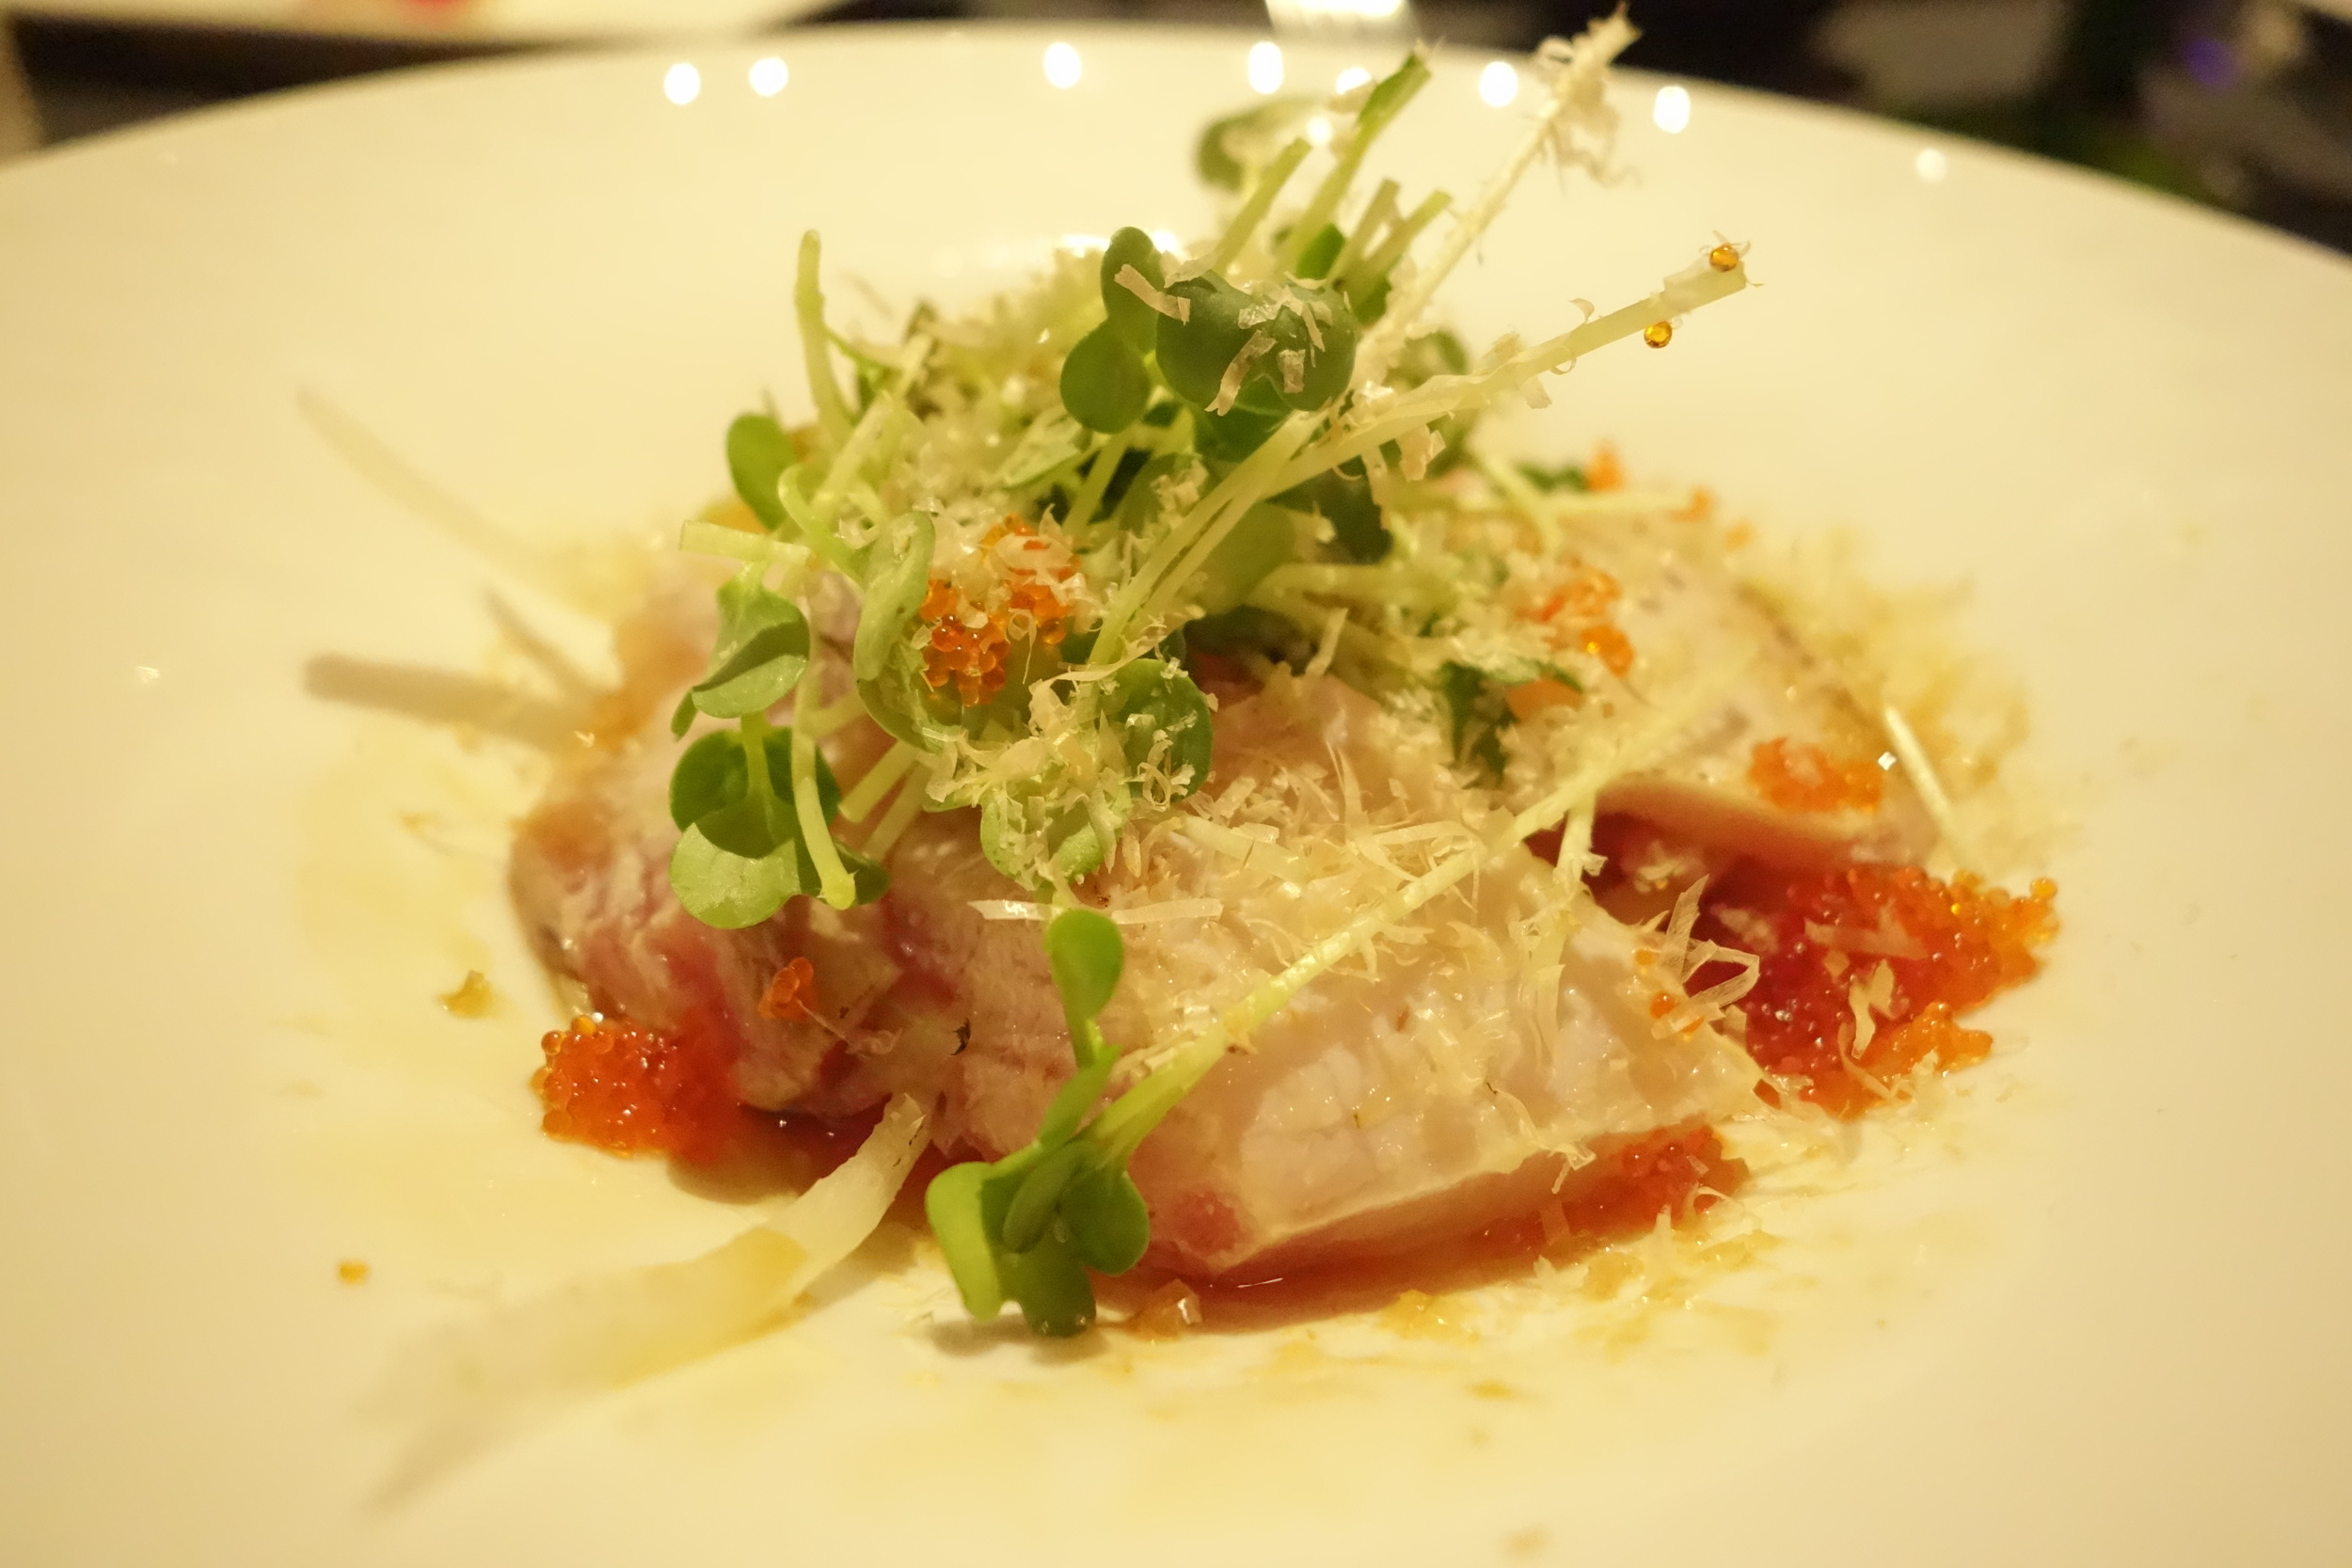 Truffle Hamachi at Anzu Restaurant and Bar.